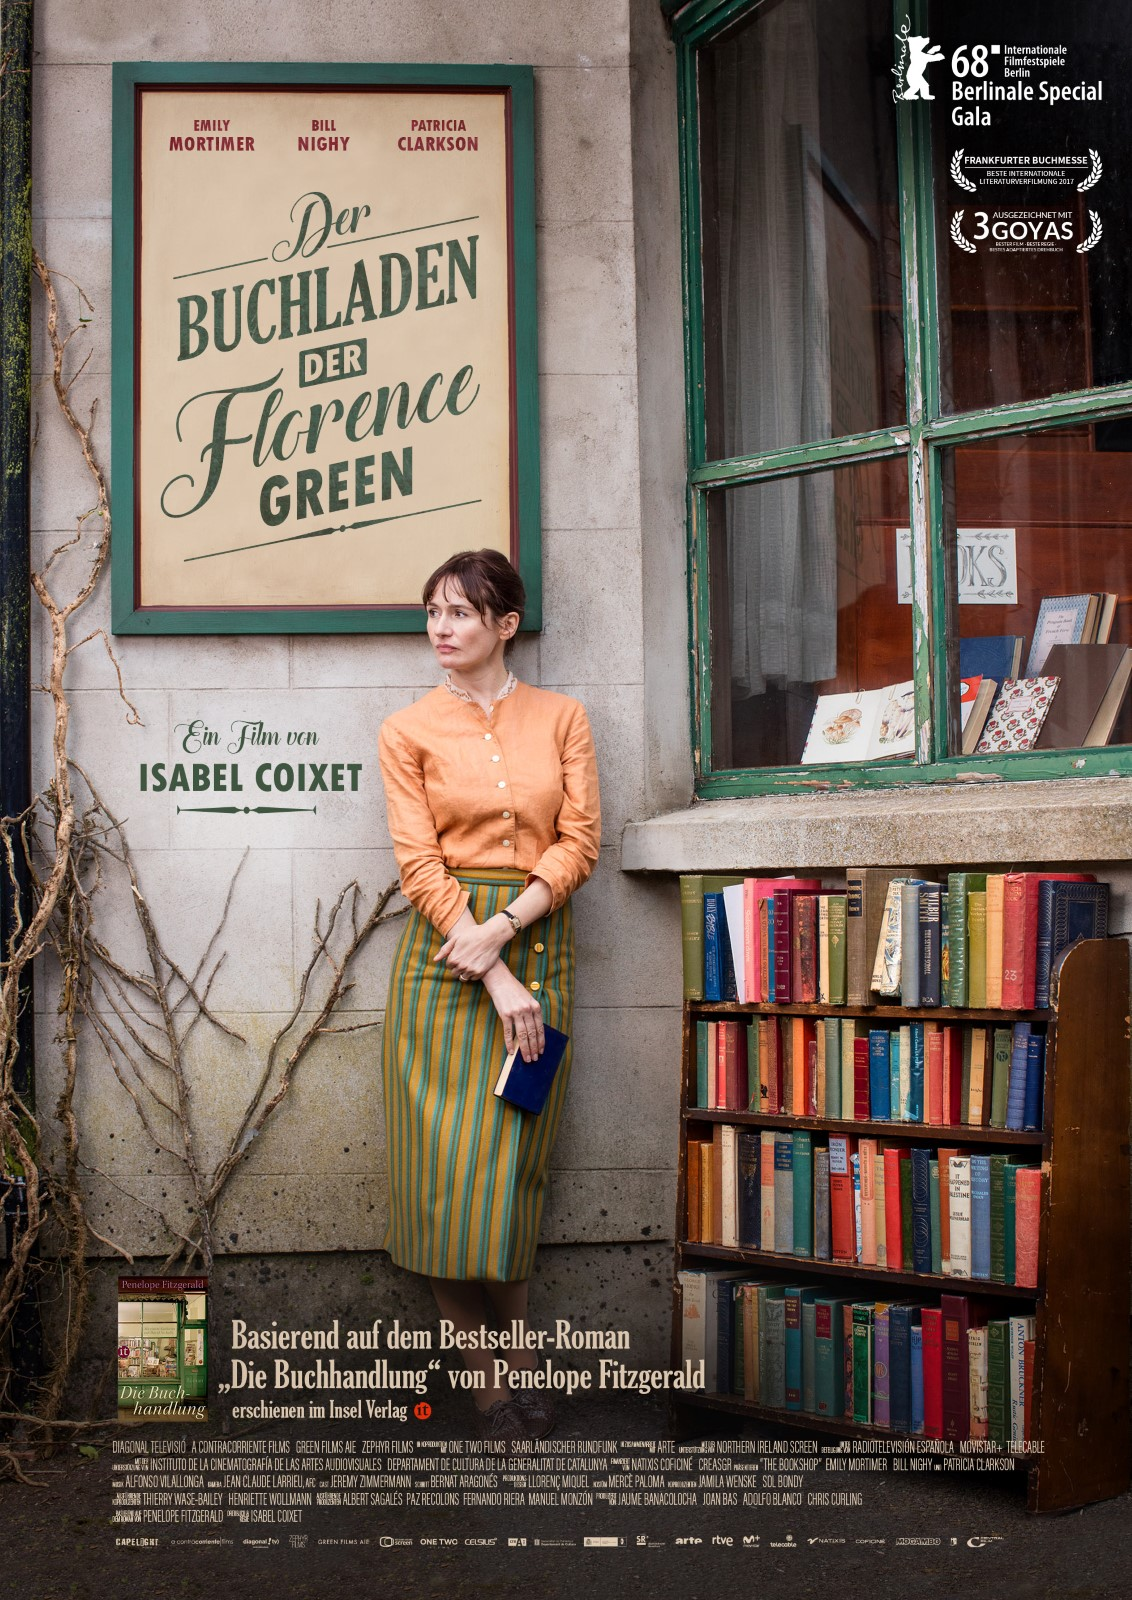 Der Buchladen der Florence Green / The Bookshop online schauen in HD als Stream & Download